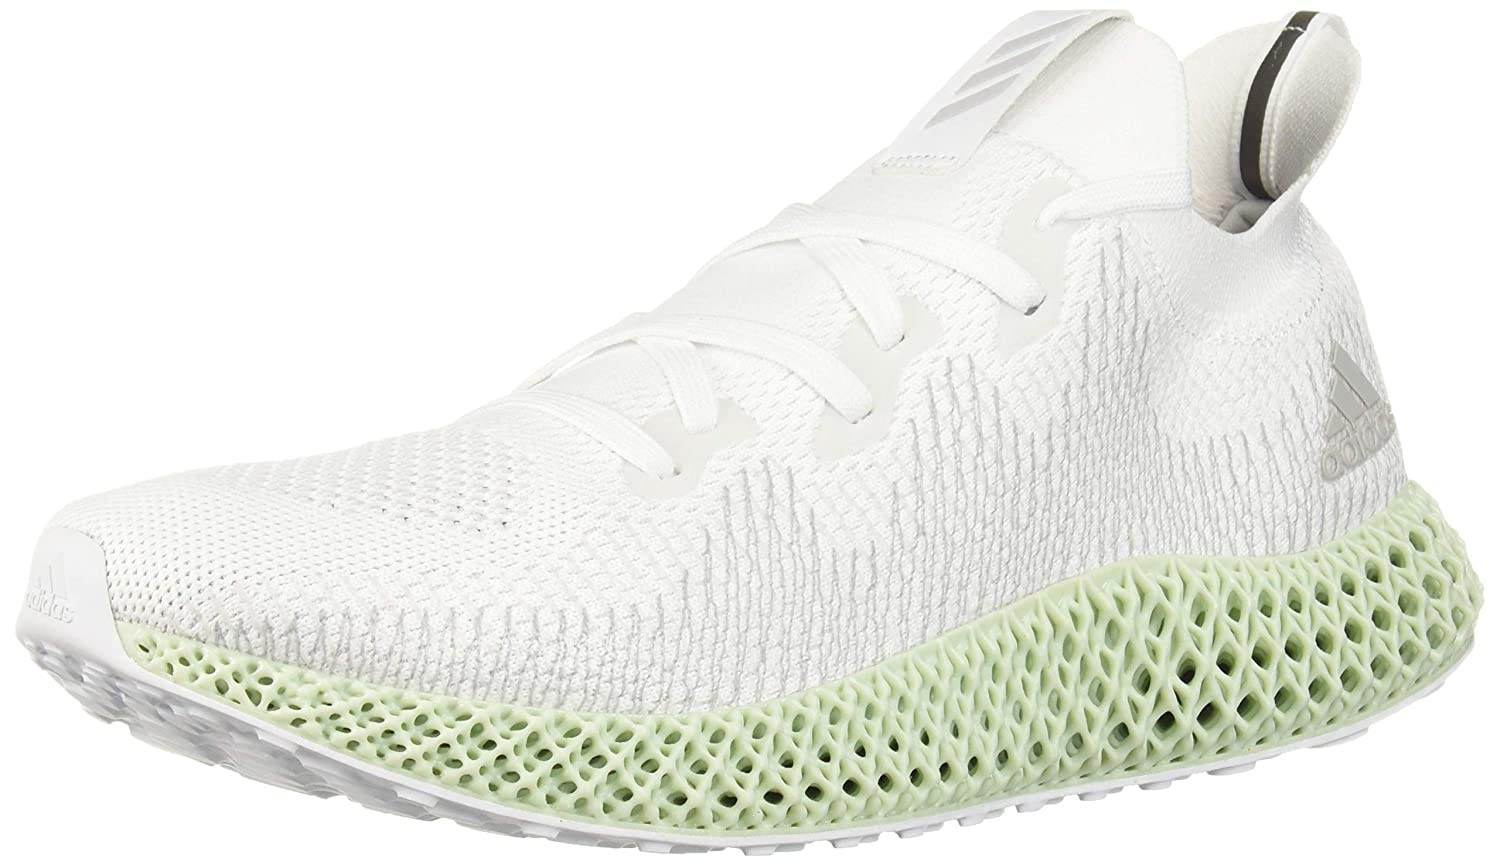 separation shoes 27dc7 6123f adidas Originals Men's Alphaedge 4d Running Shoe